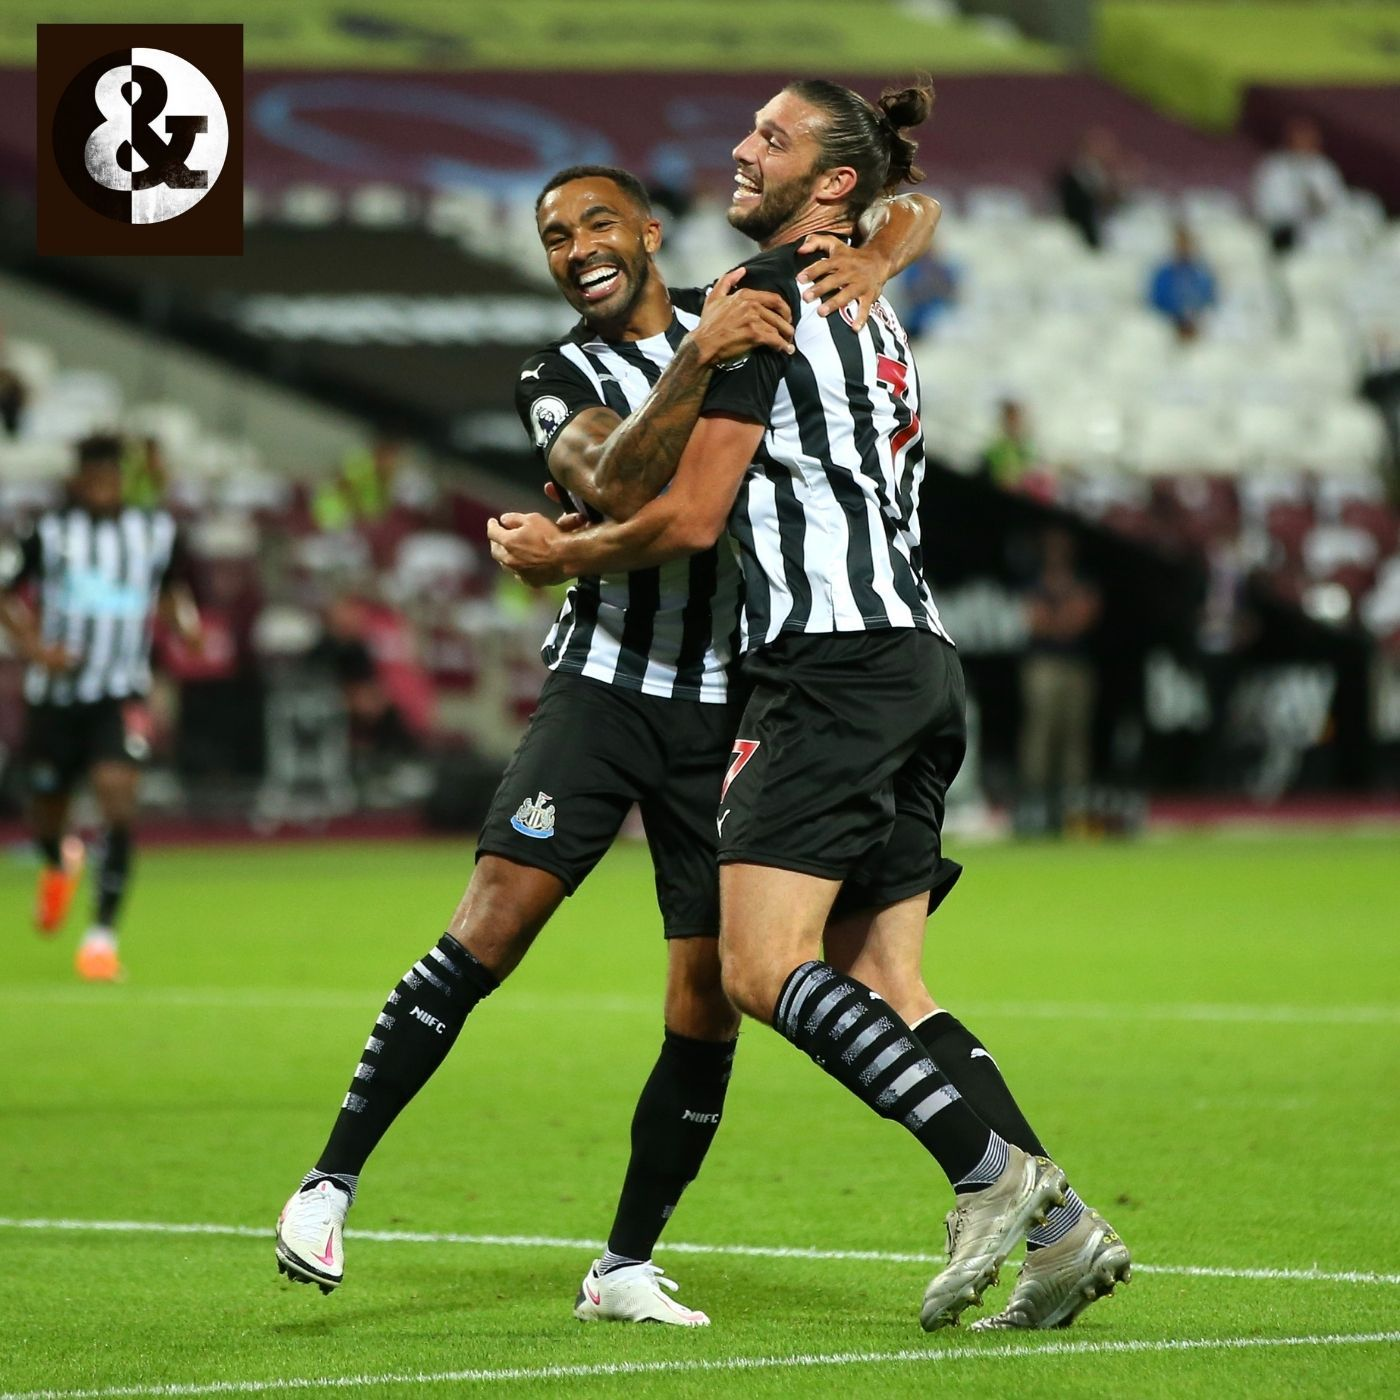 West Ham 0-2 Newcastle: Magpies' new boys impress as victory is secured